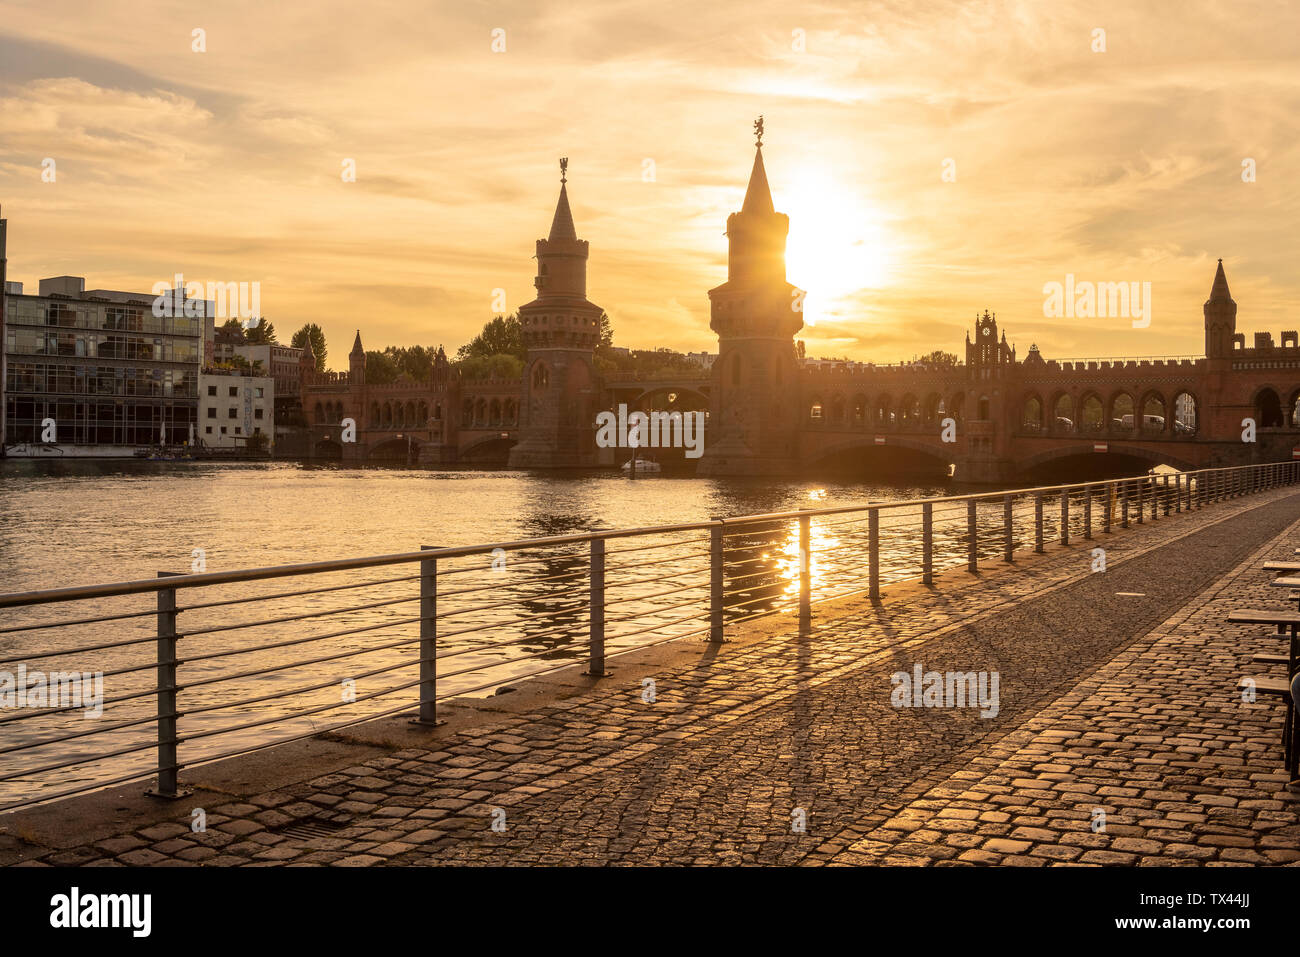 Germany, Berlin-Friedrichshain, view to Oberbaum Bridge at sunrise - Stock Image